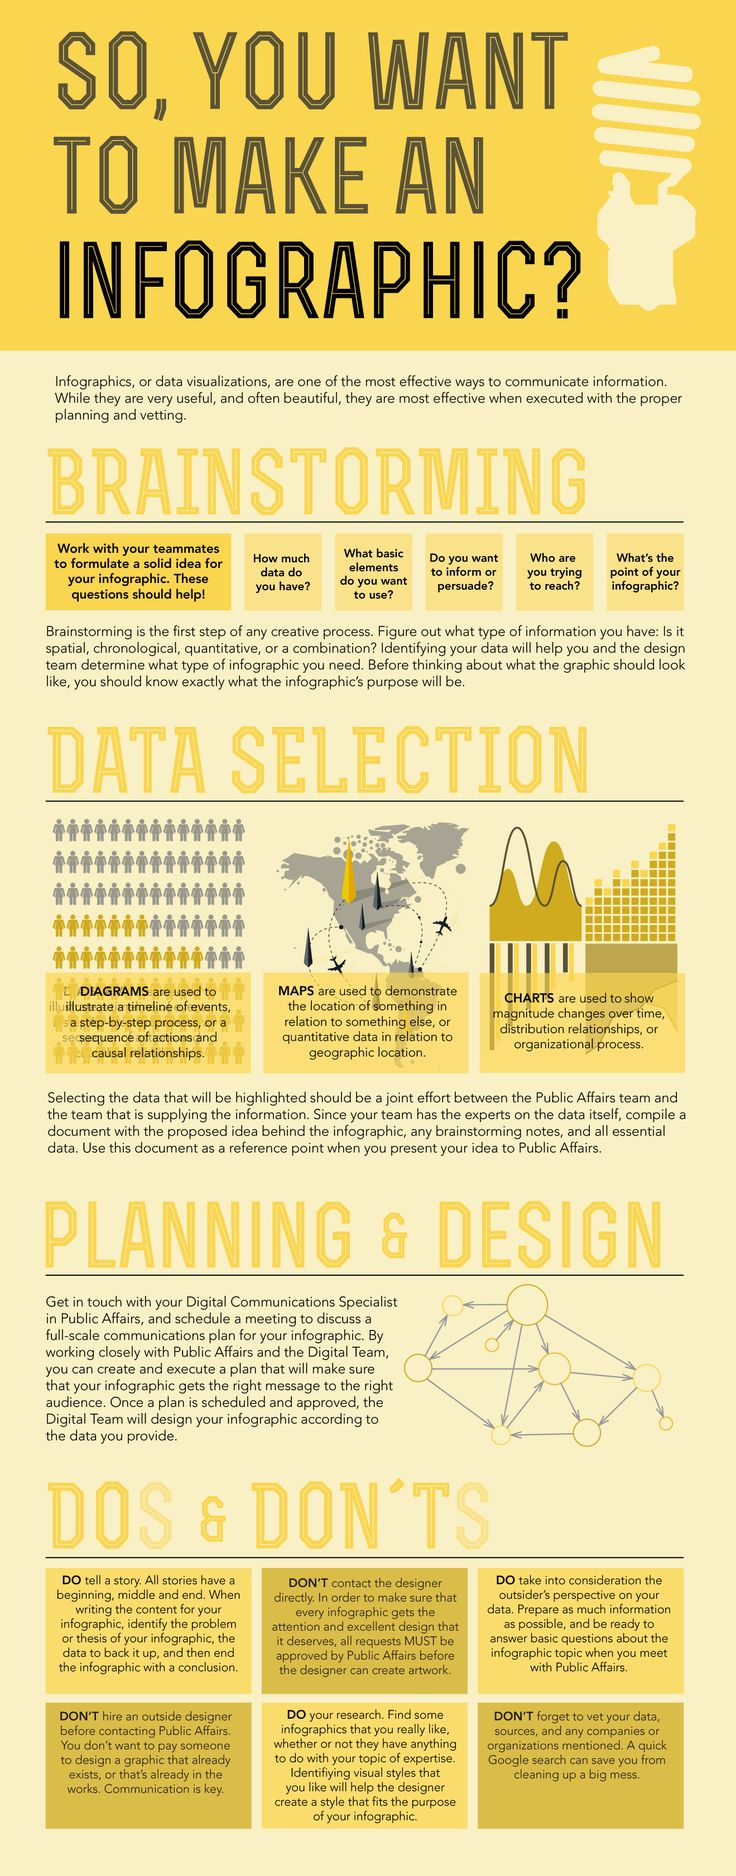 So, You Want to Make an #INFOGRAPHIC